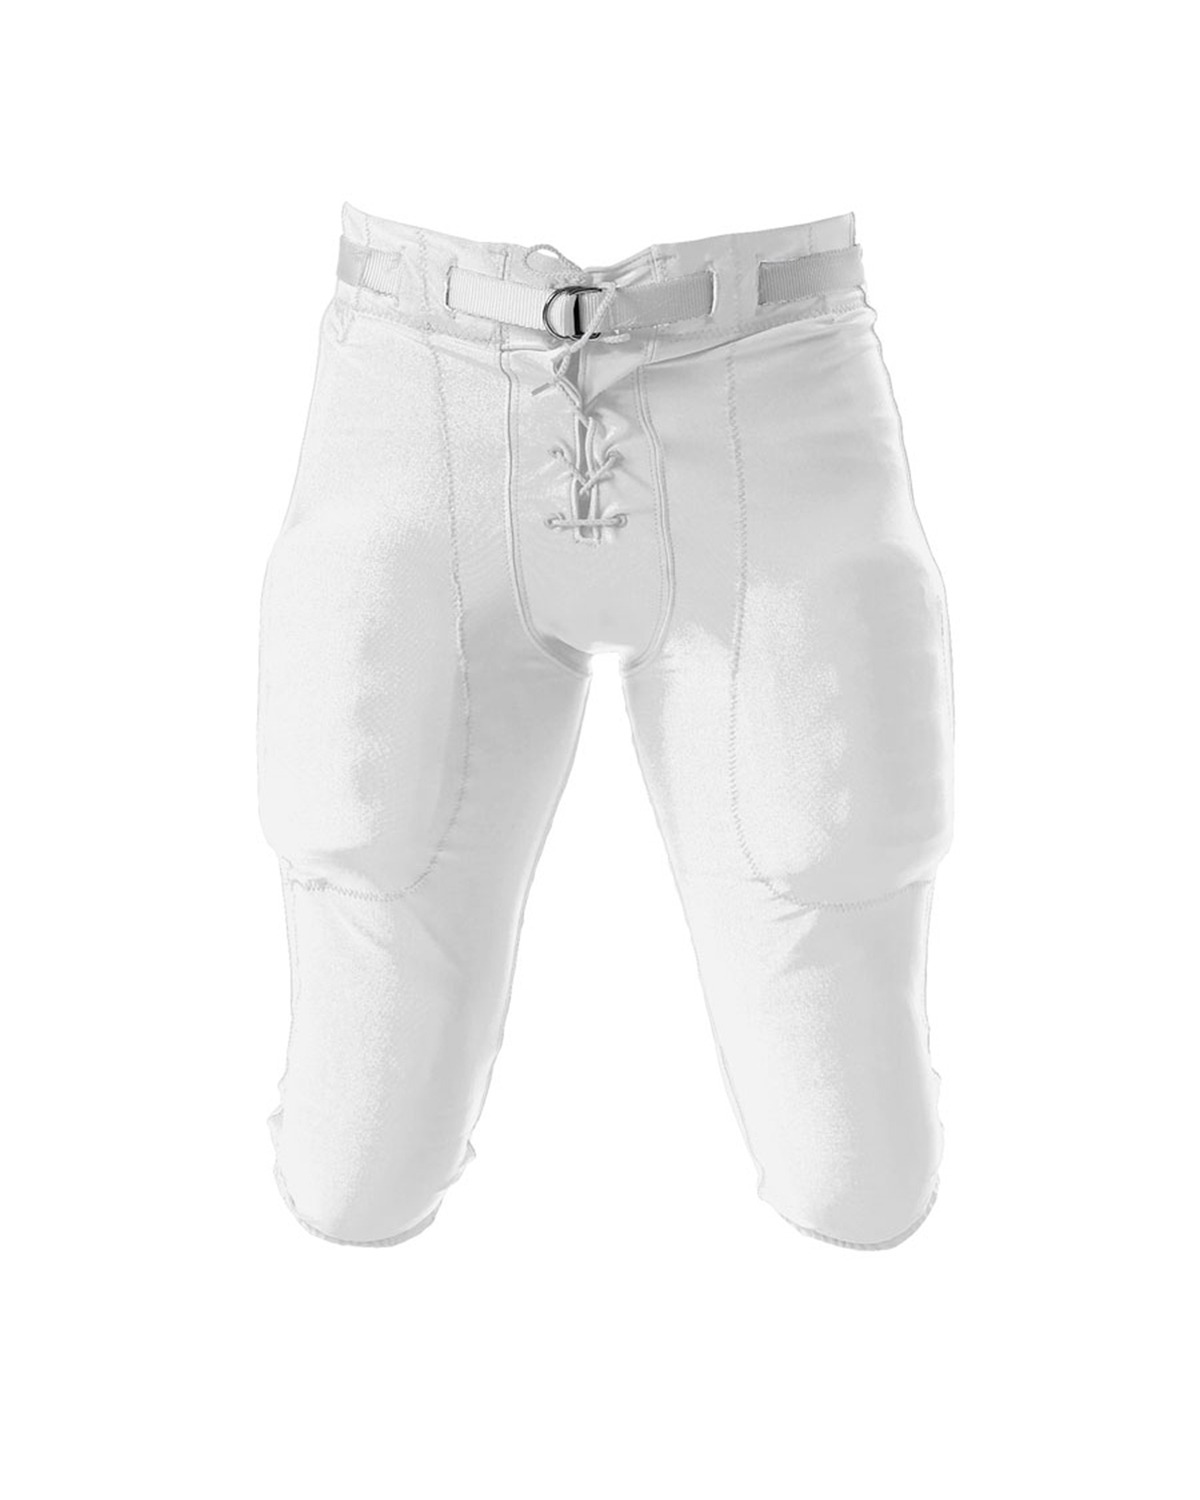 A4 Drop Ship - N6141  Adult Football Game Pant